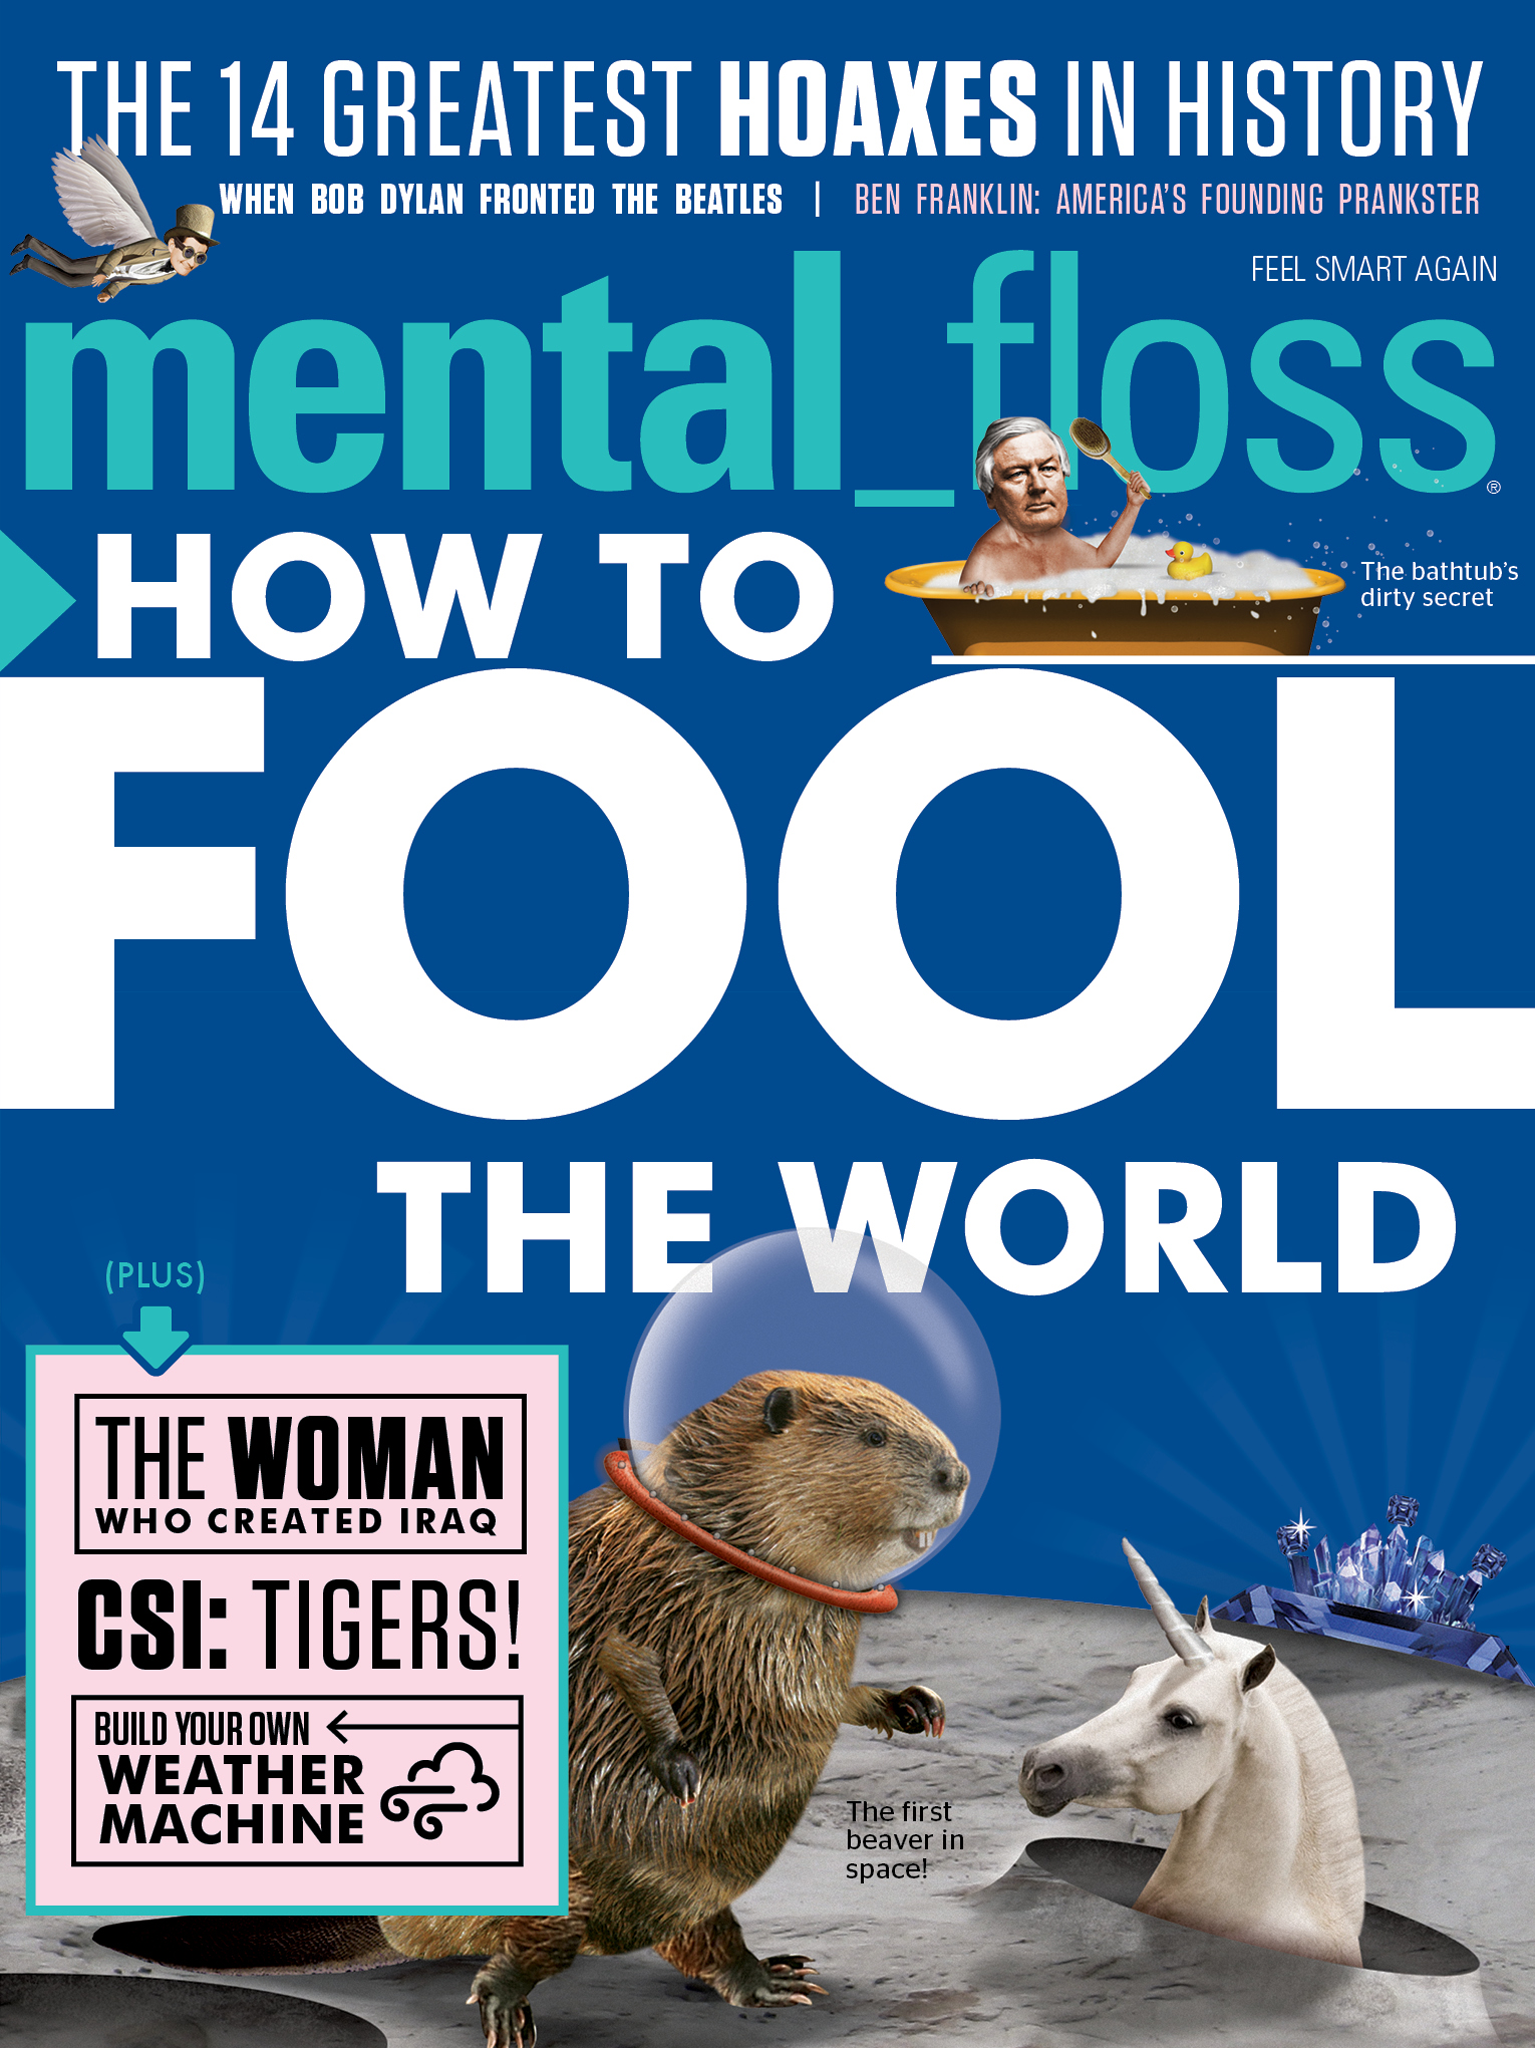 Mental-floss-made-with-magplus